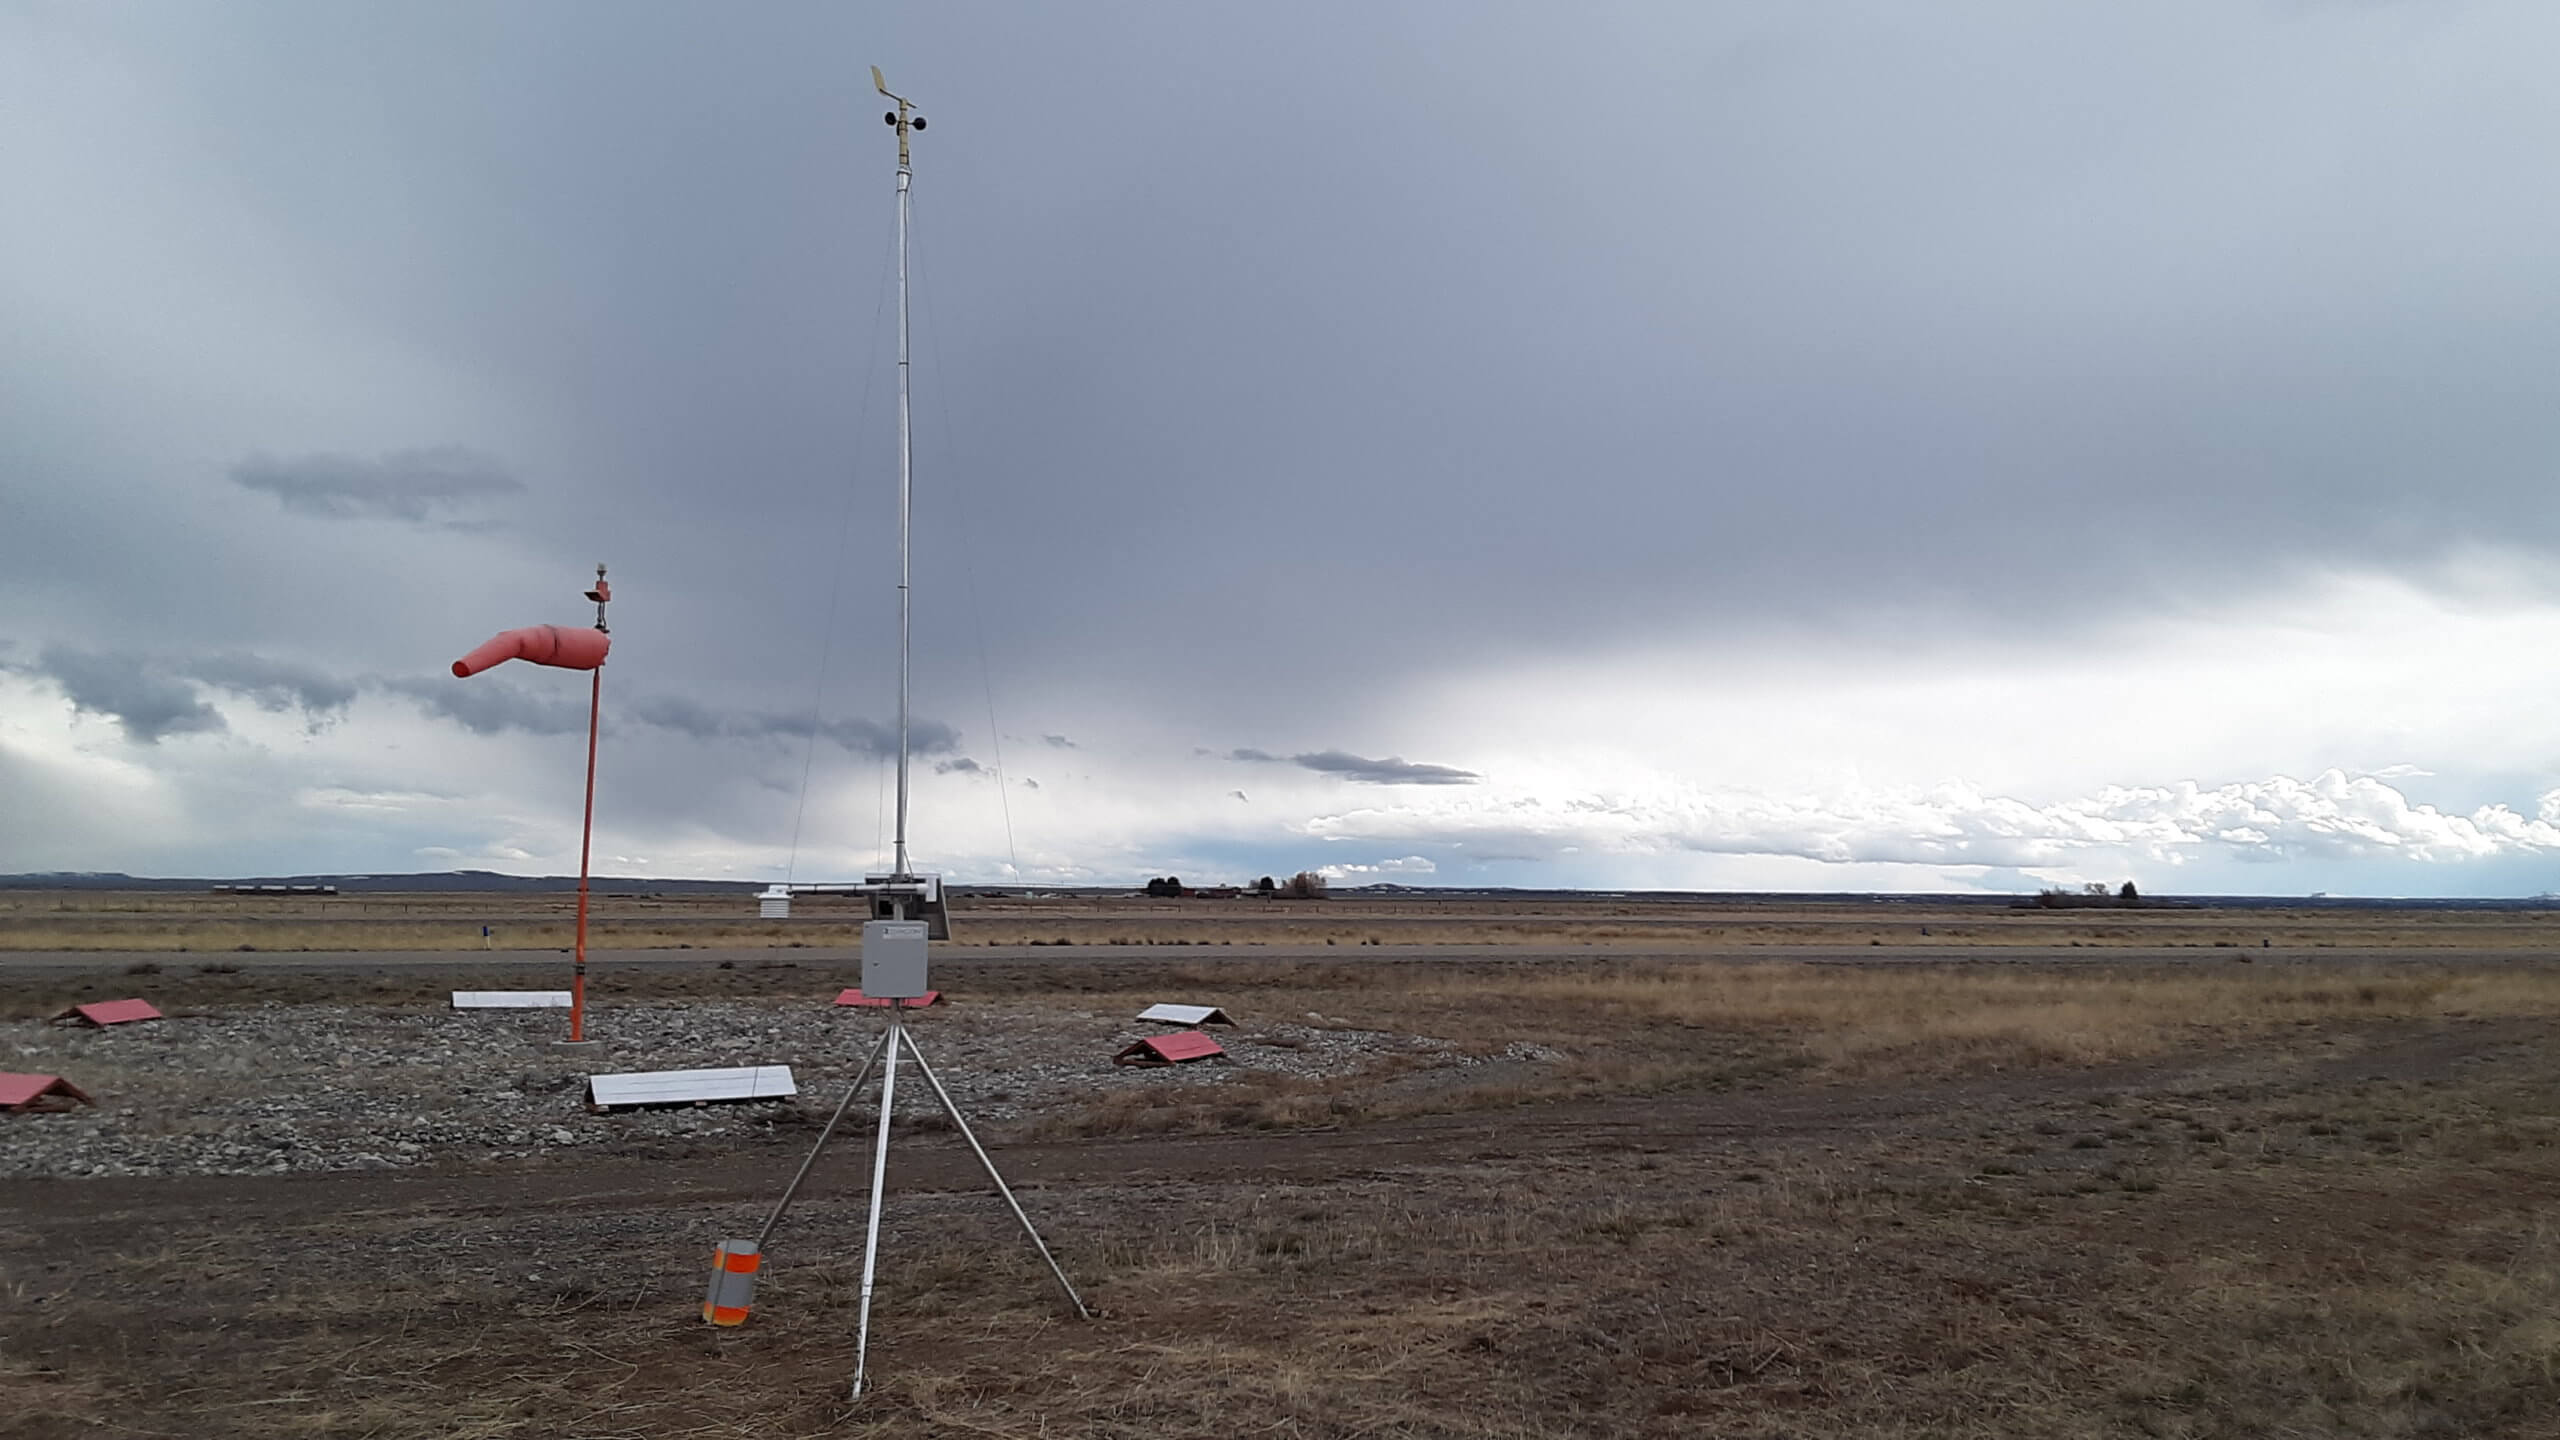 AWOS, ASOS, and Advisory Weather Stations